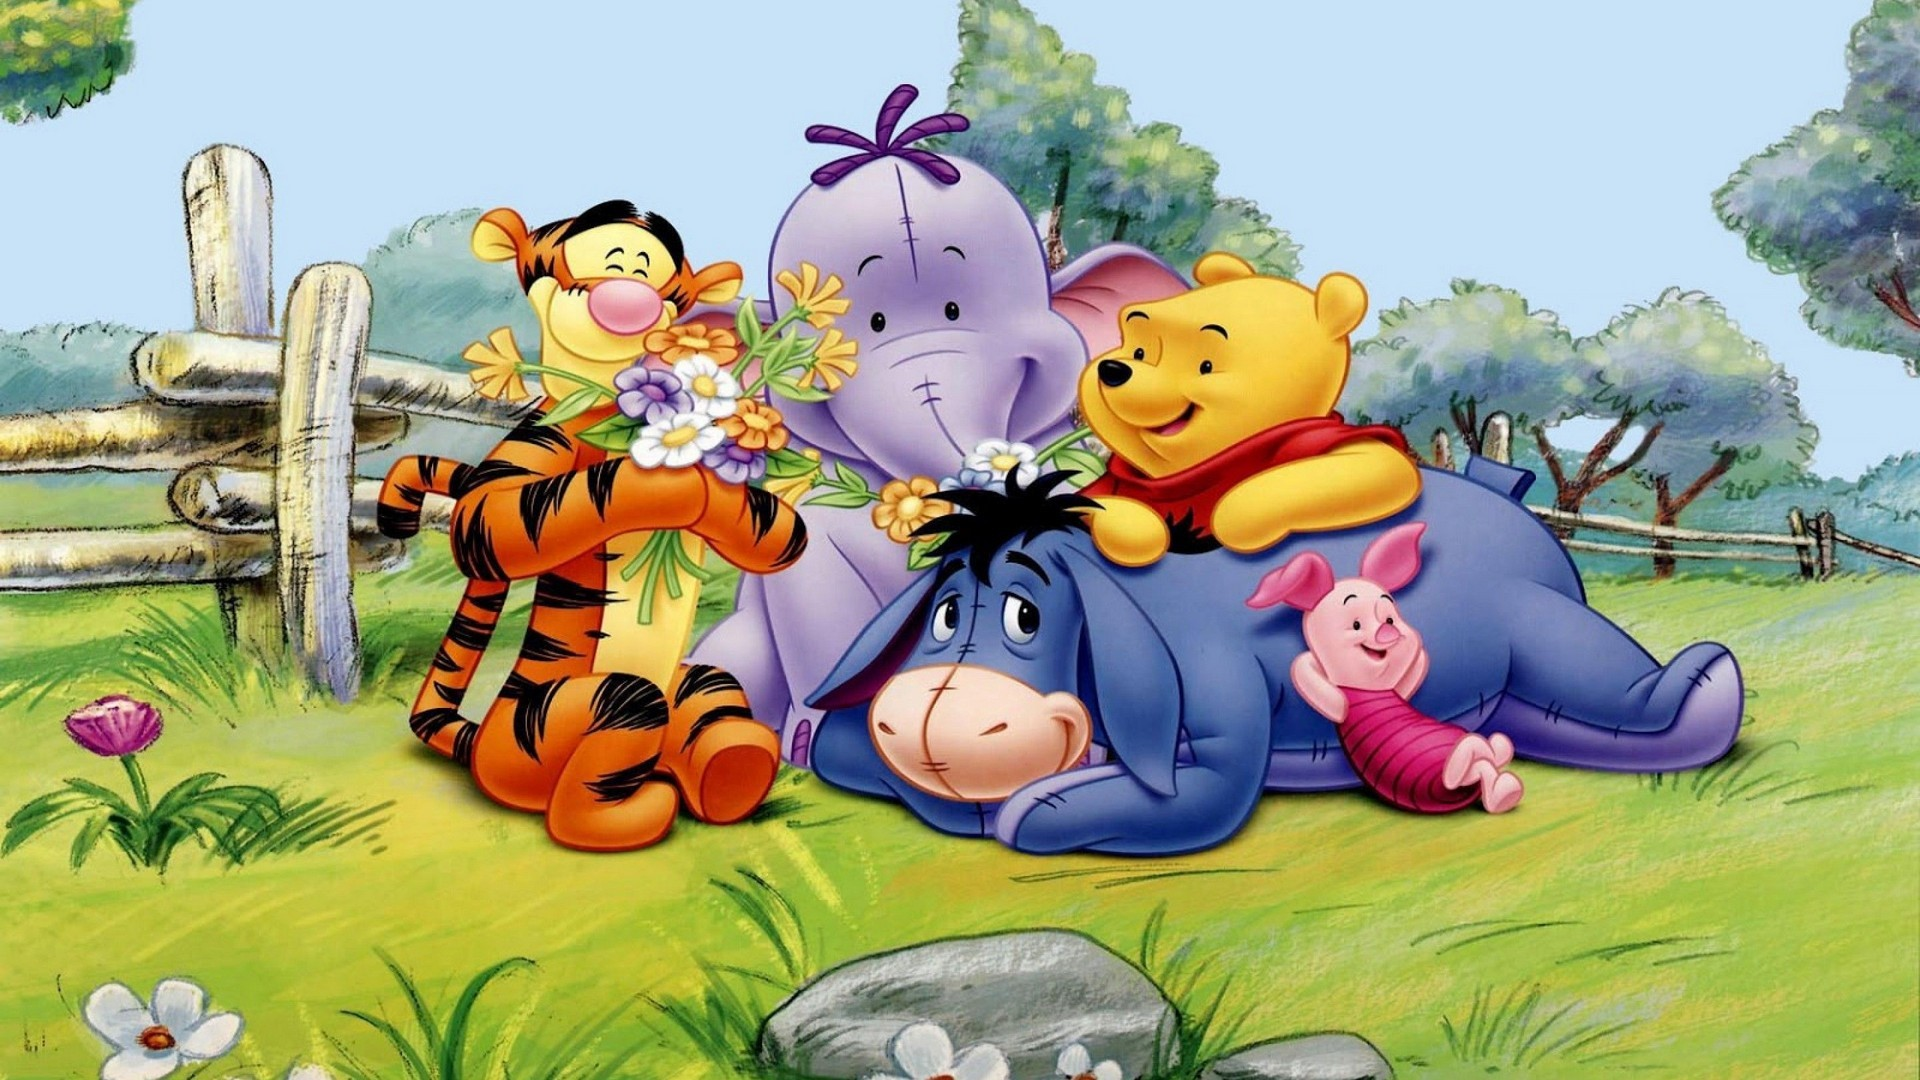 Winnie the pooh desktop wallpapers 76 background pictures 1920x1080 winnie the pooh tigger eeyore piglet and elephant spring hd wallpaper altavistaventures Images